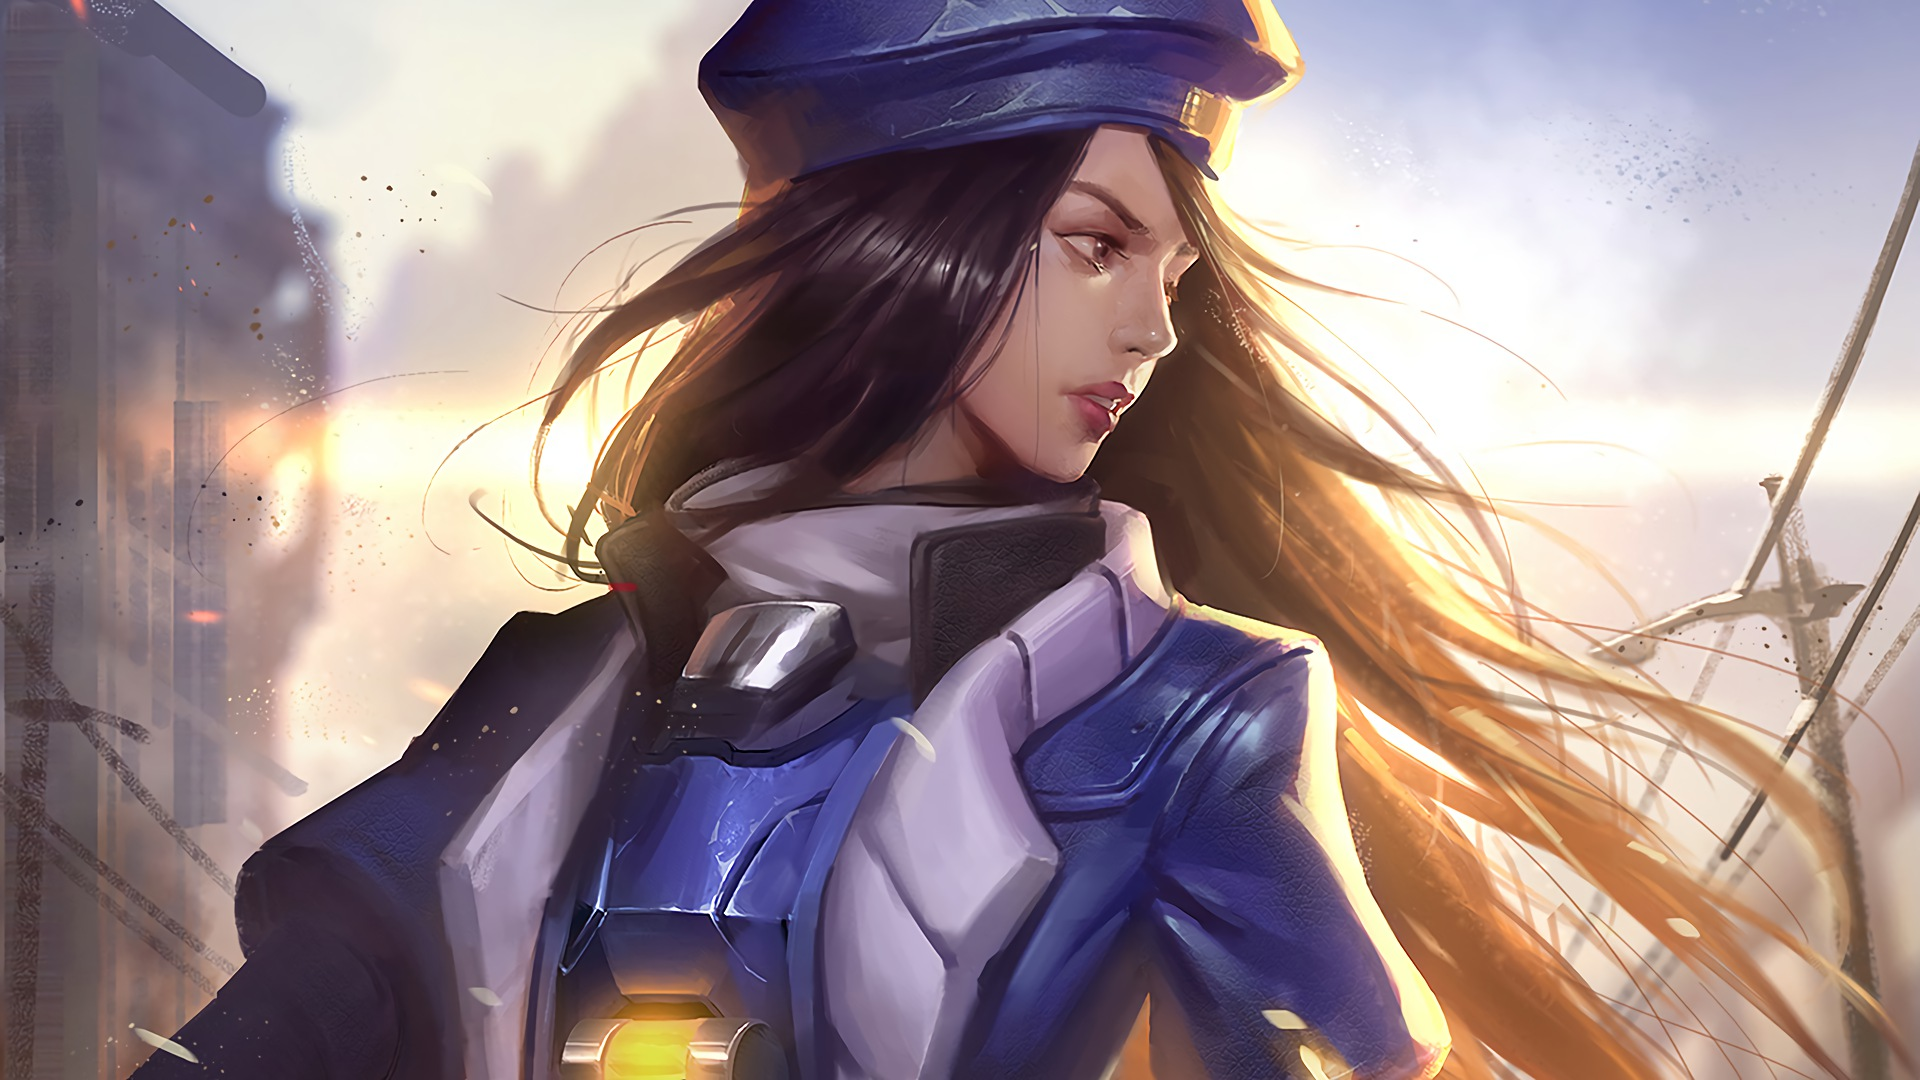 Ana overwatch artwork hd games 4k wallpapers images - Ana wallpaper ...